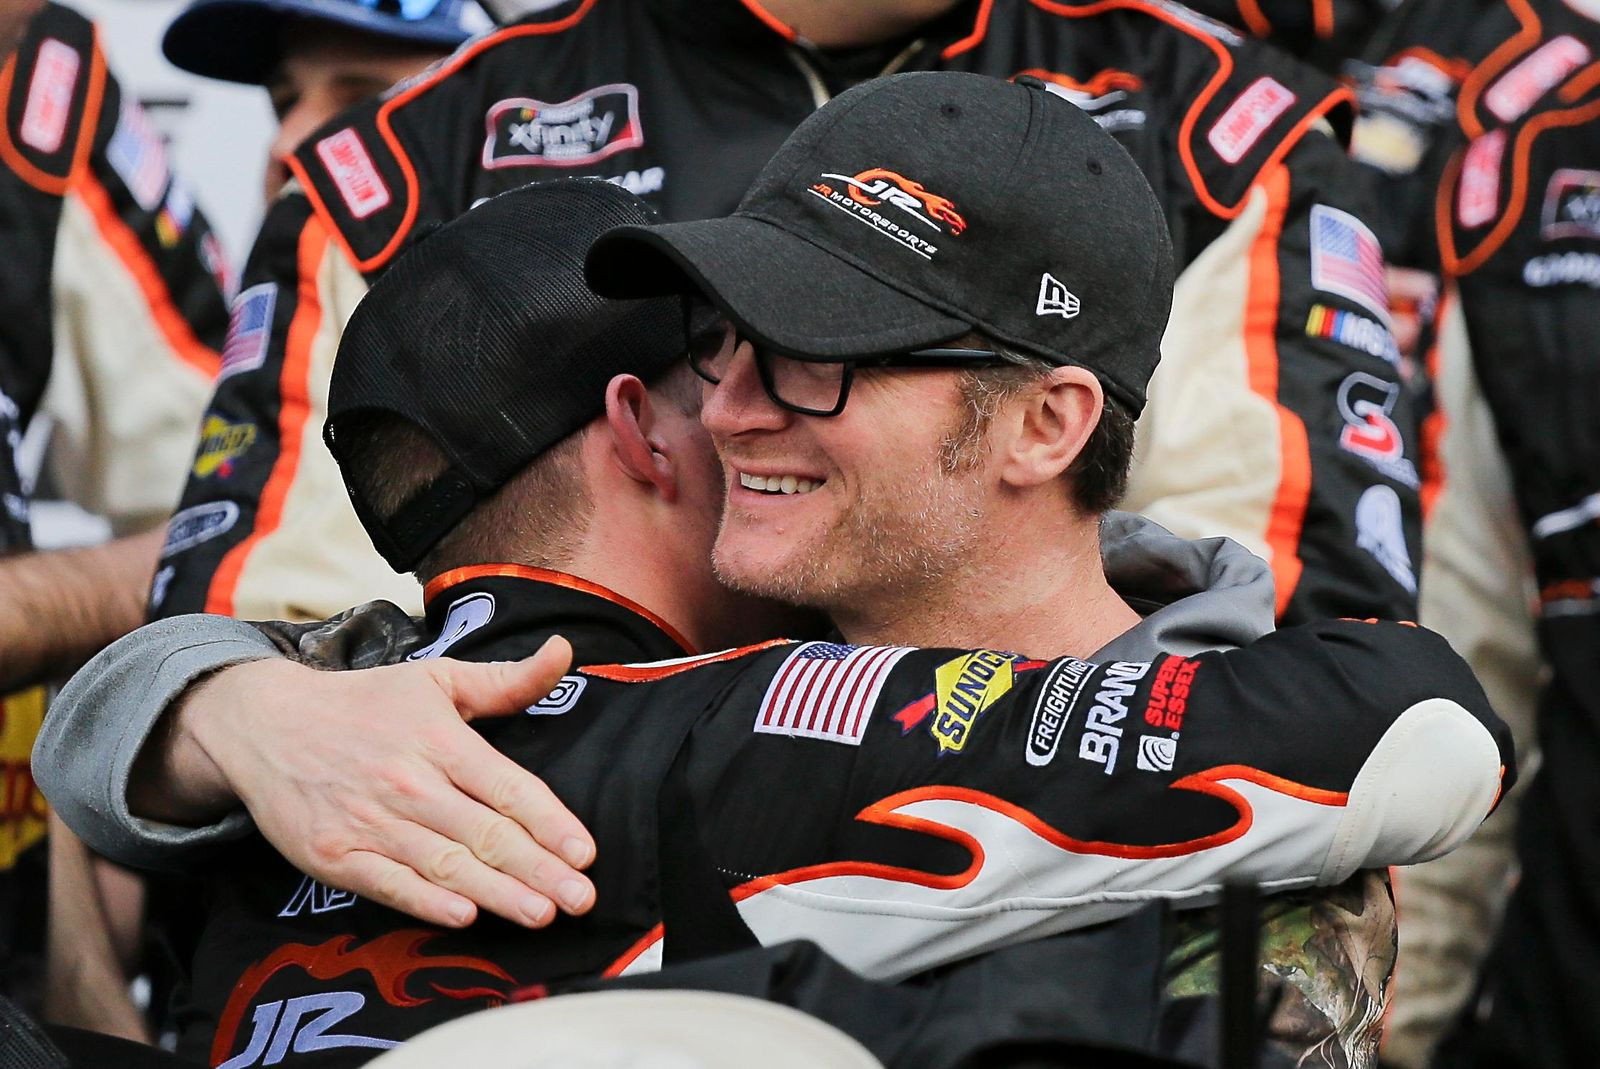 Car owner Dale Earnhardt Jr., right, hugs driver Noah Gragson in Victory Lane after he won the NASCAR Xfinity series auto race at Daytona International Speedway, Saturday, Feb. 15, 2020, in Daytona Beach, Fla. (AP Photo/Terry Renna)